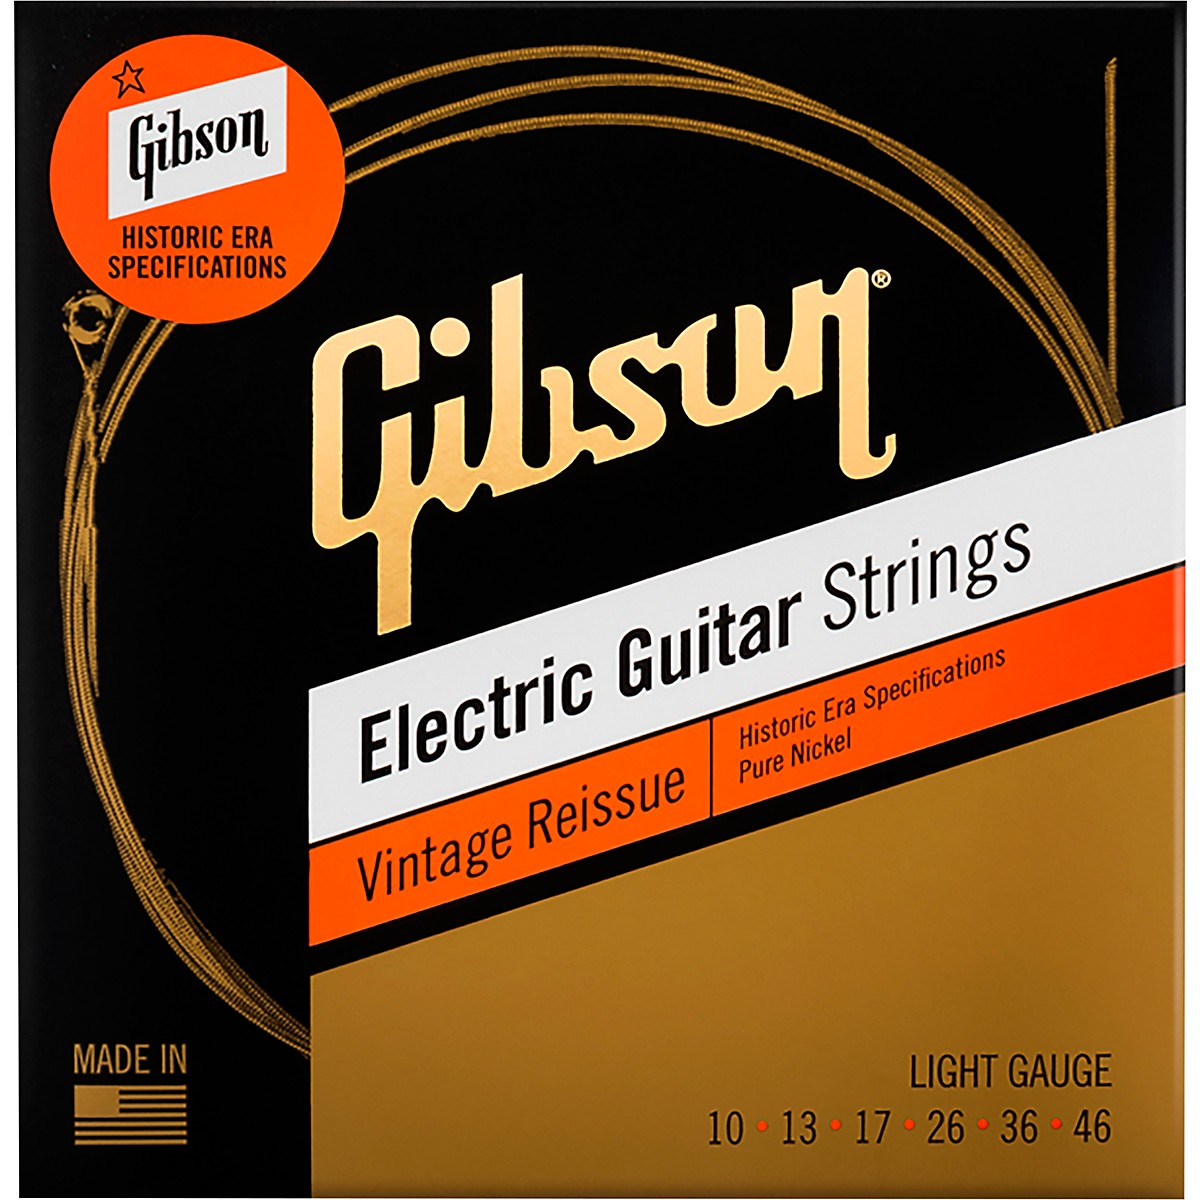 Gibson Vintage Reissue Electic Guitar Strings, Light Gauge